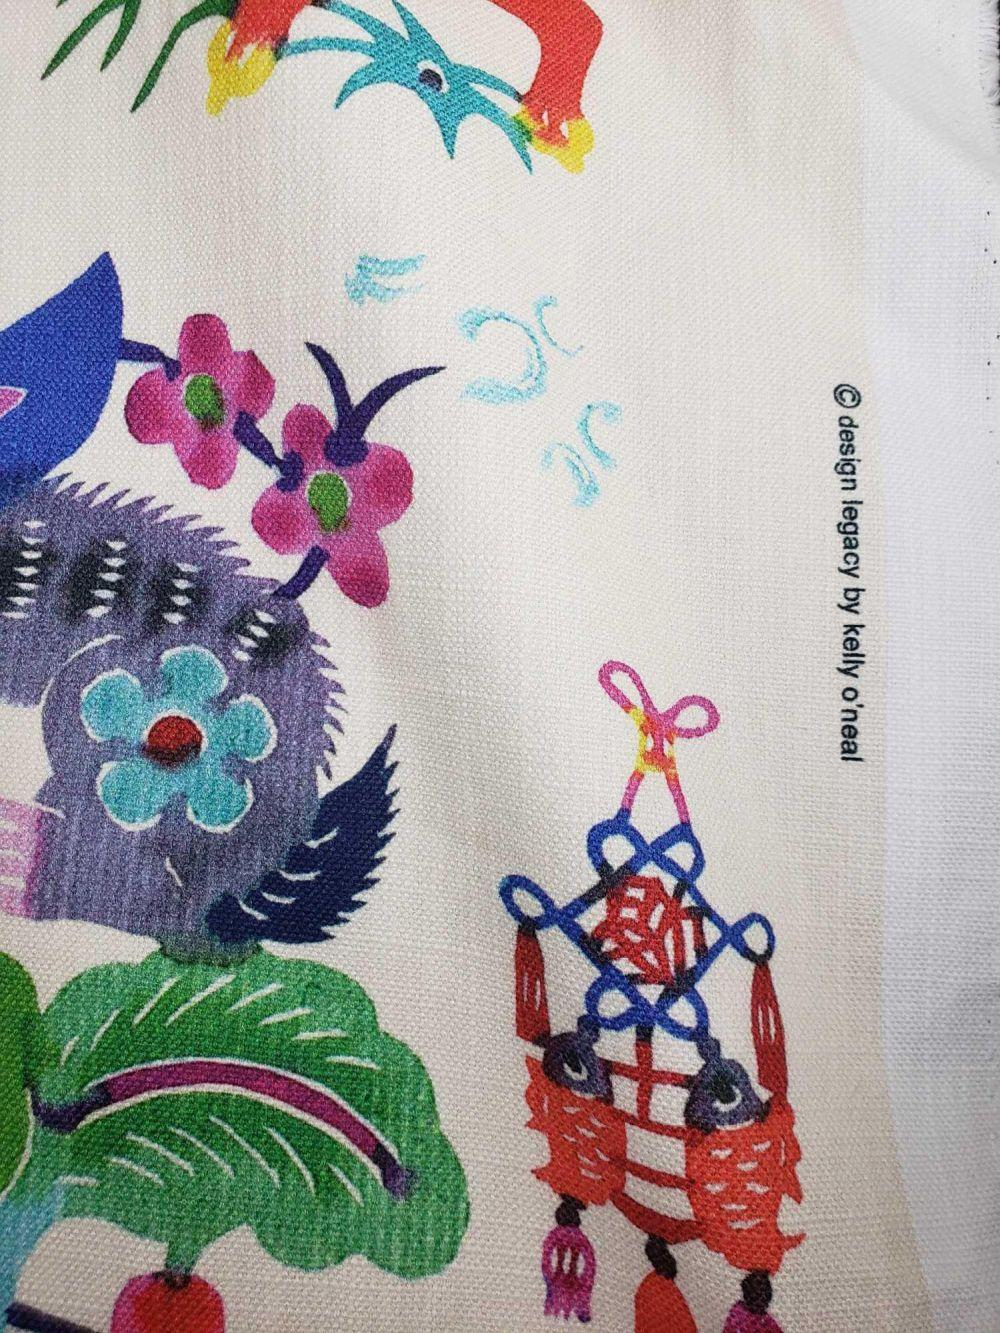 Lot 215: Design Legacy by Kelly O'Neal Chinese Mythical Animal Watercolor Design Fabric Roll